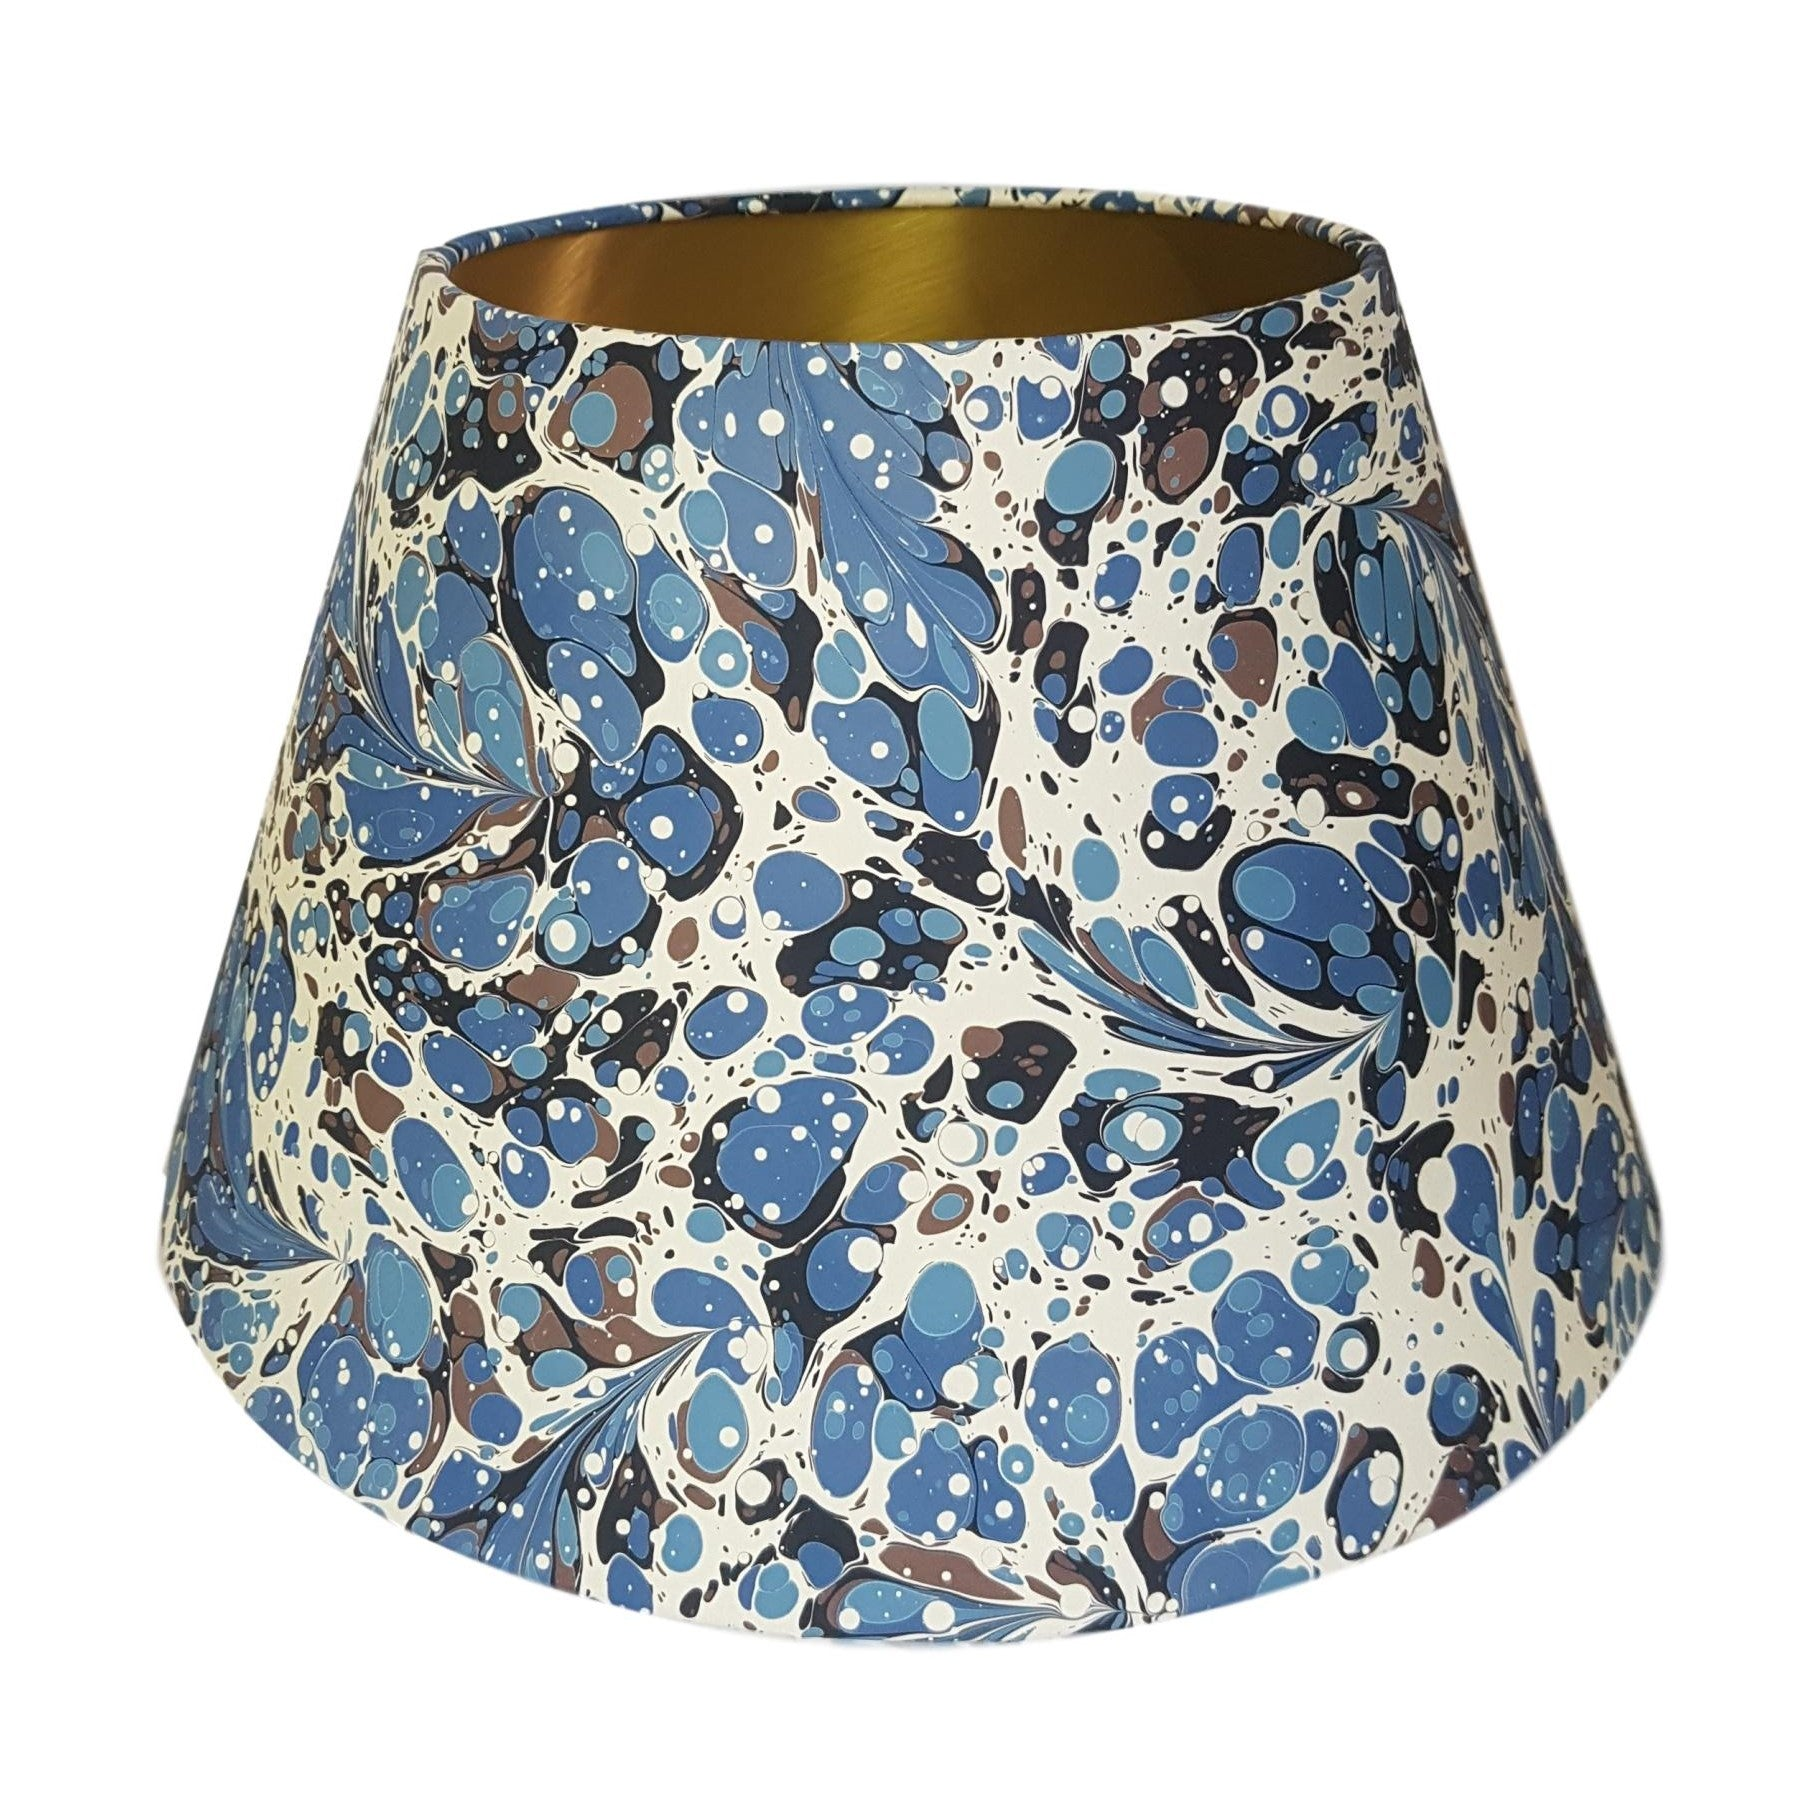 Munro and Kerr blue swirl marbled paper for a handmade empire lampshade